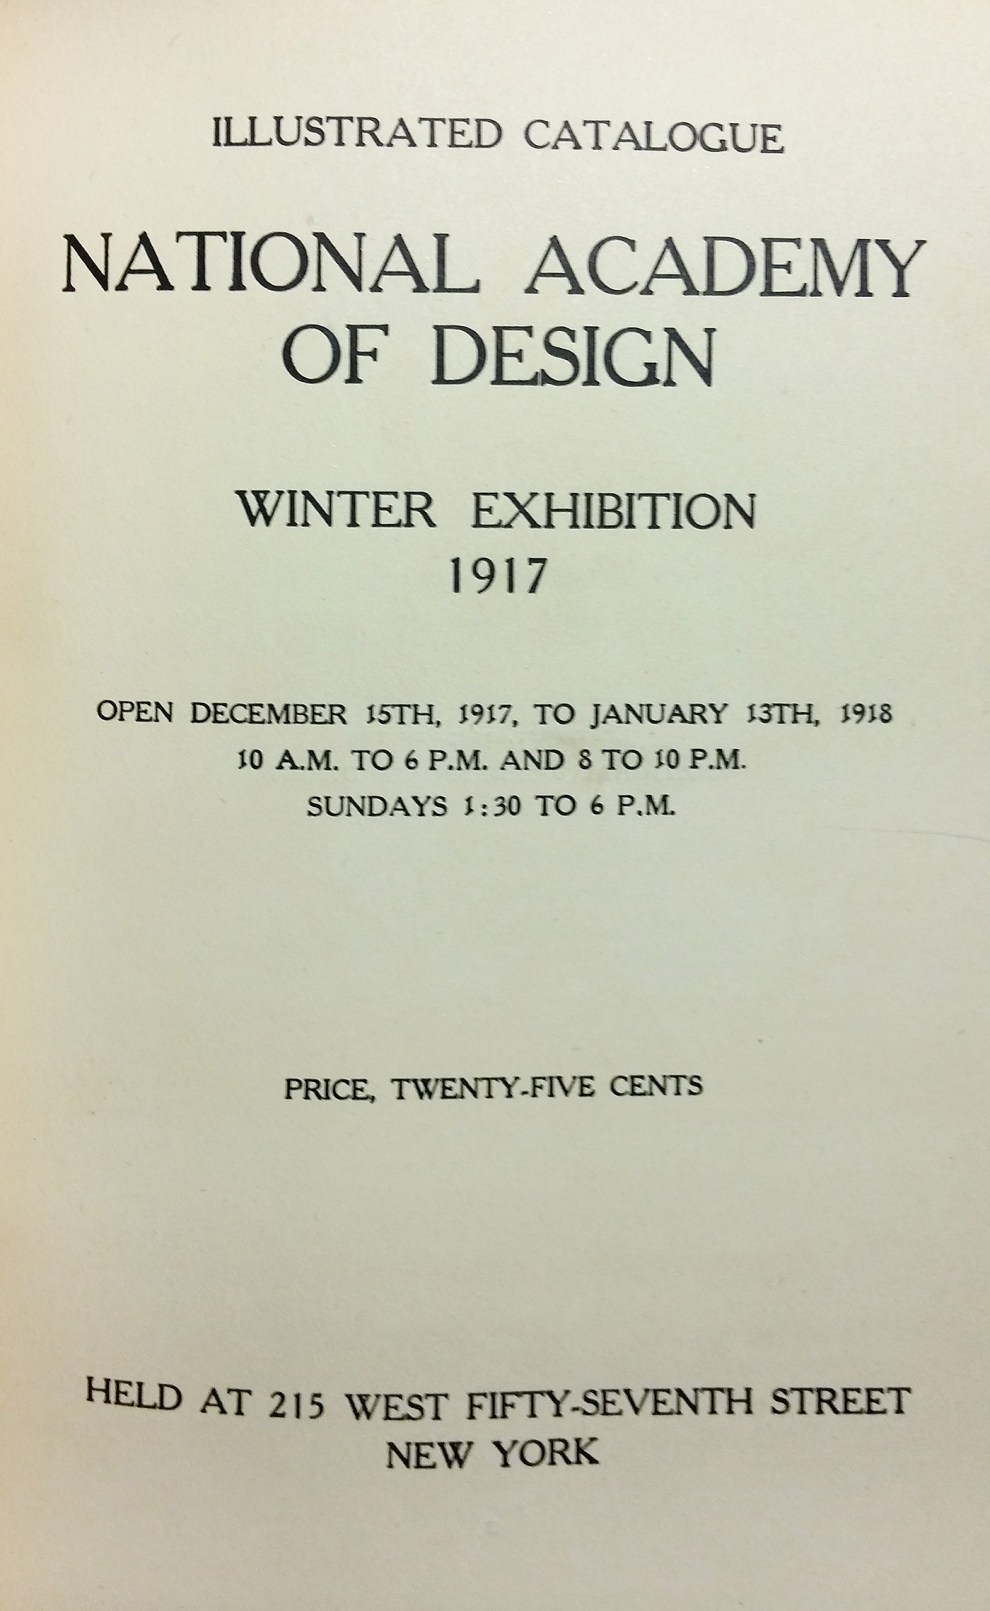 "1917 National Academy of Design, New York, NY ""Winter Exhibition"", December 15, 1917 - January 13, 1918"